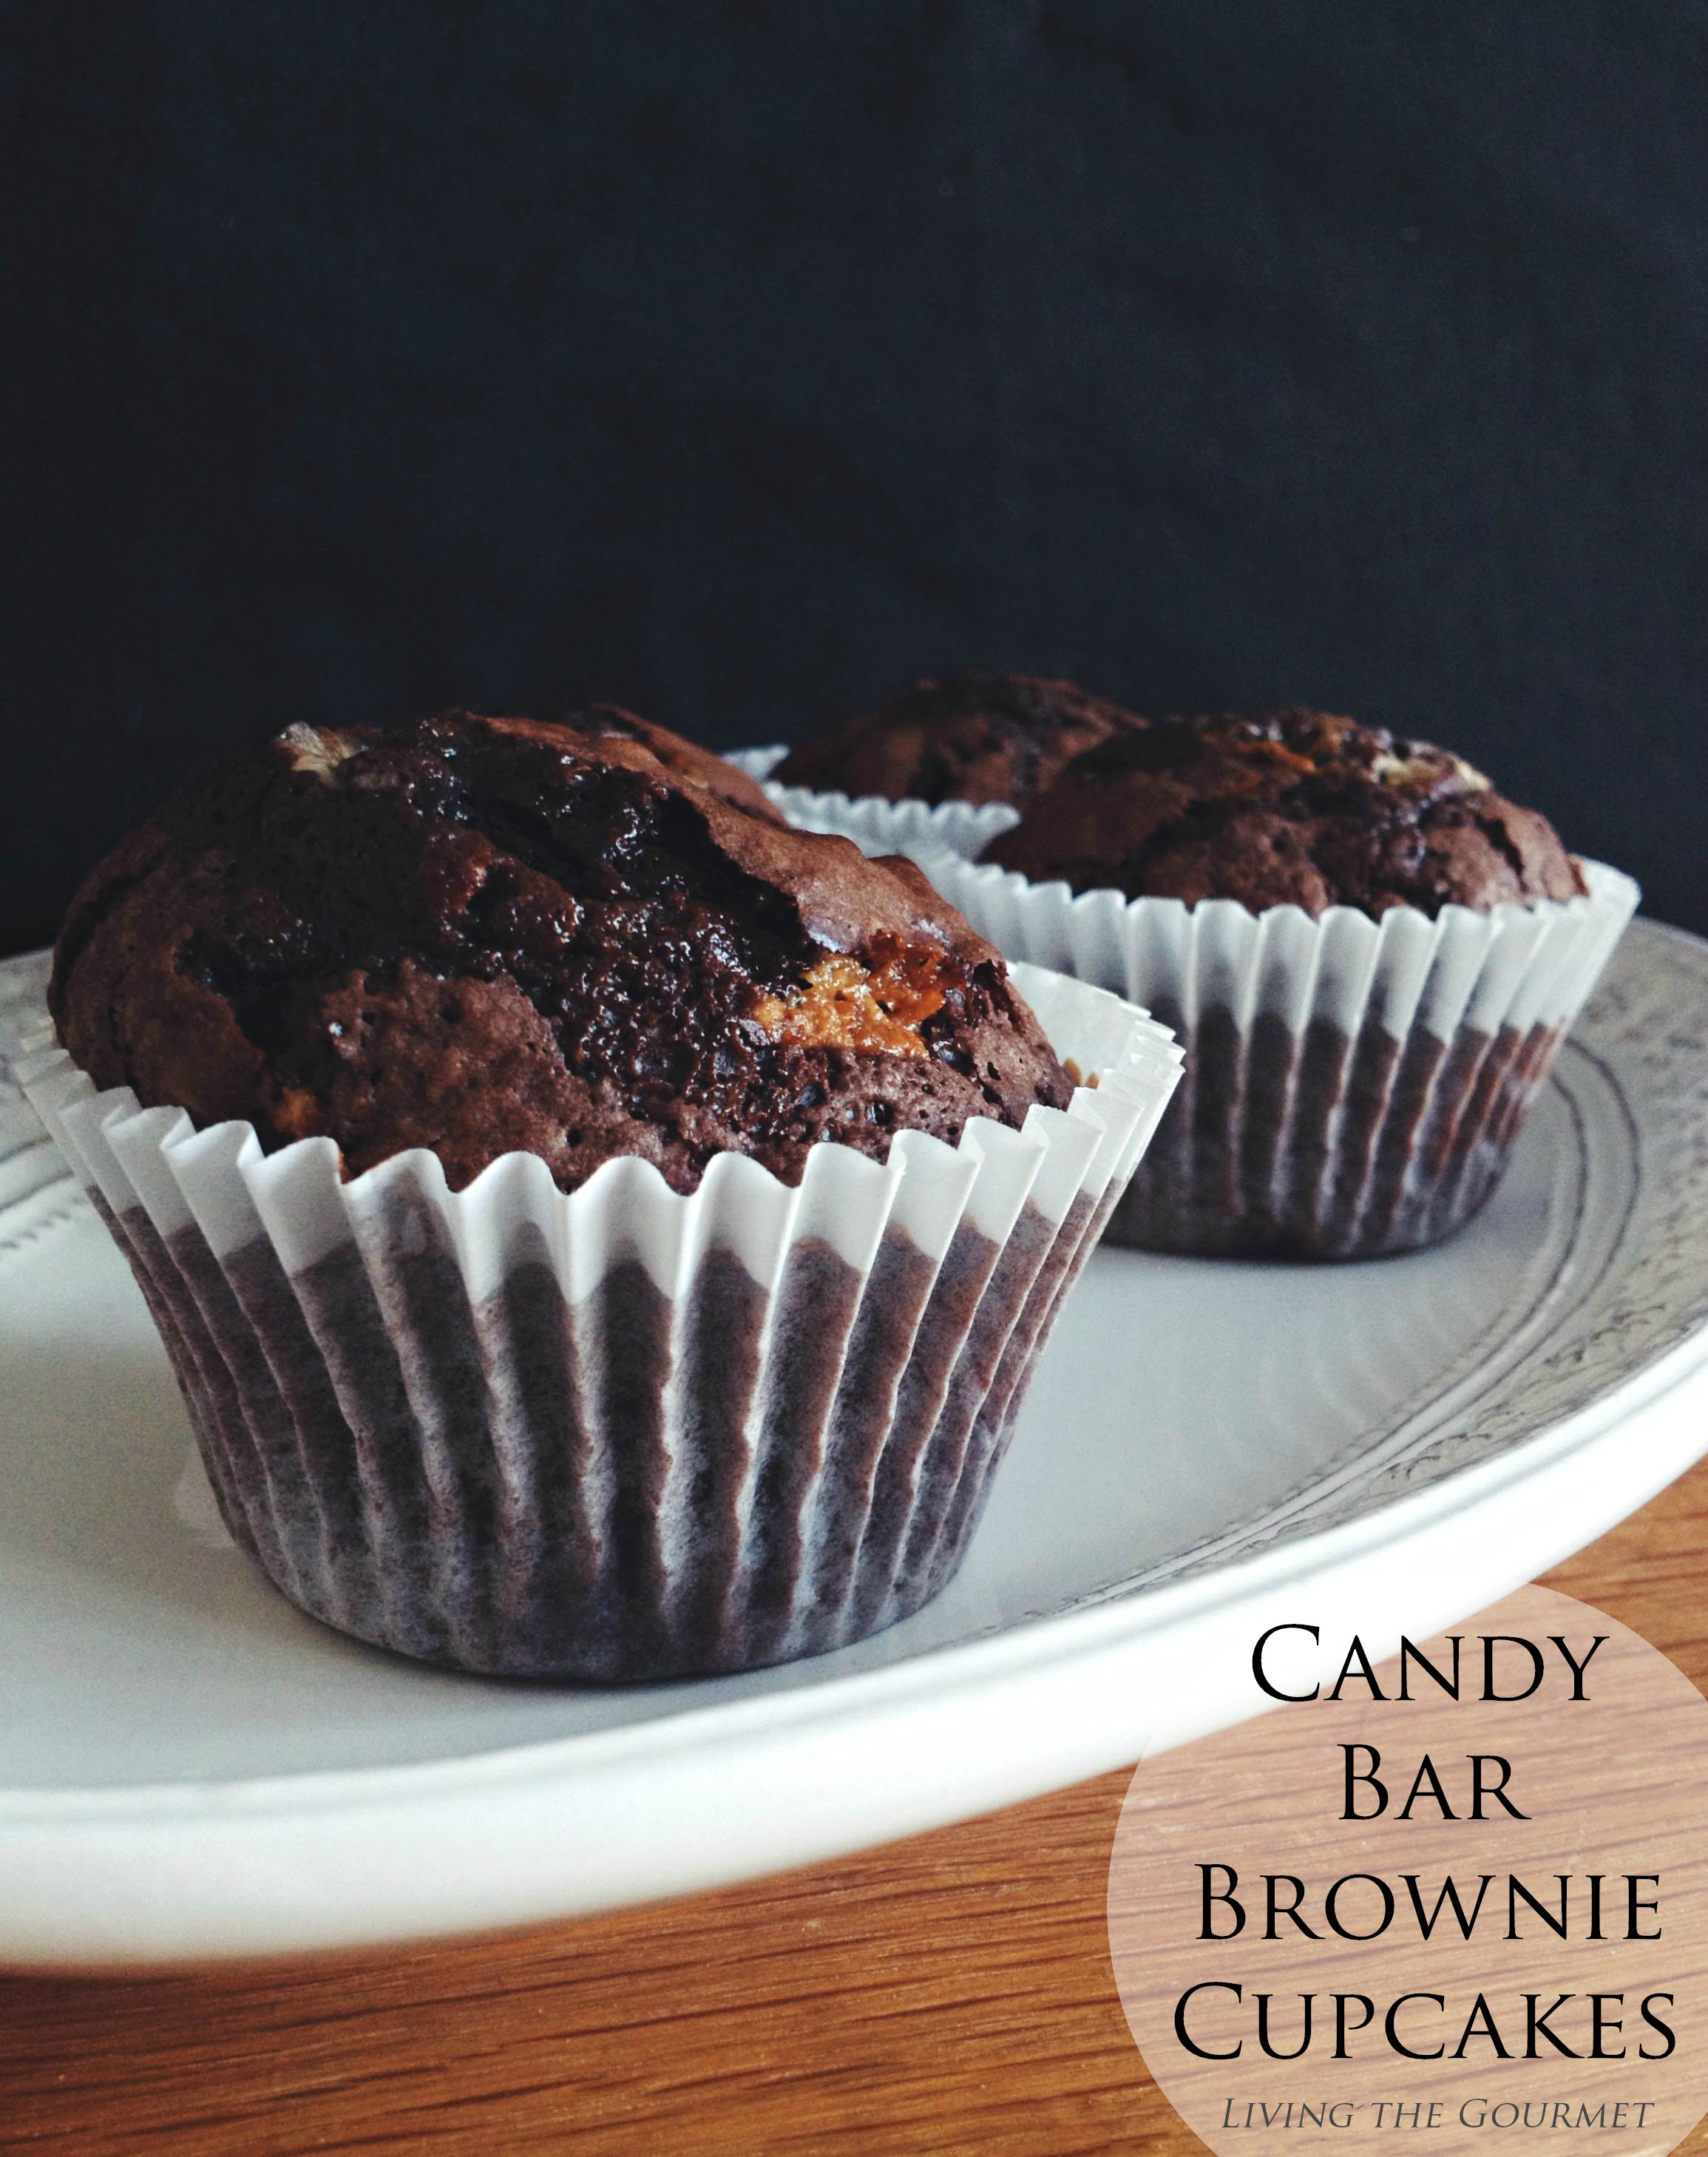 Living the Gourmet: Candy Bar Brownie Cupcakes